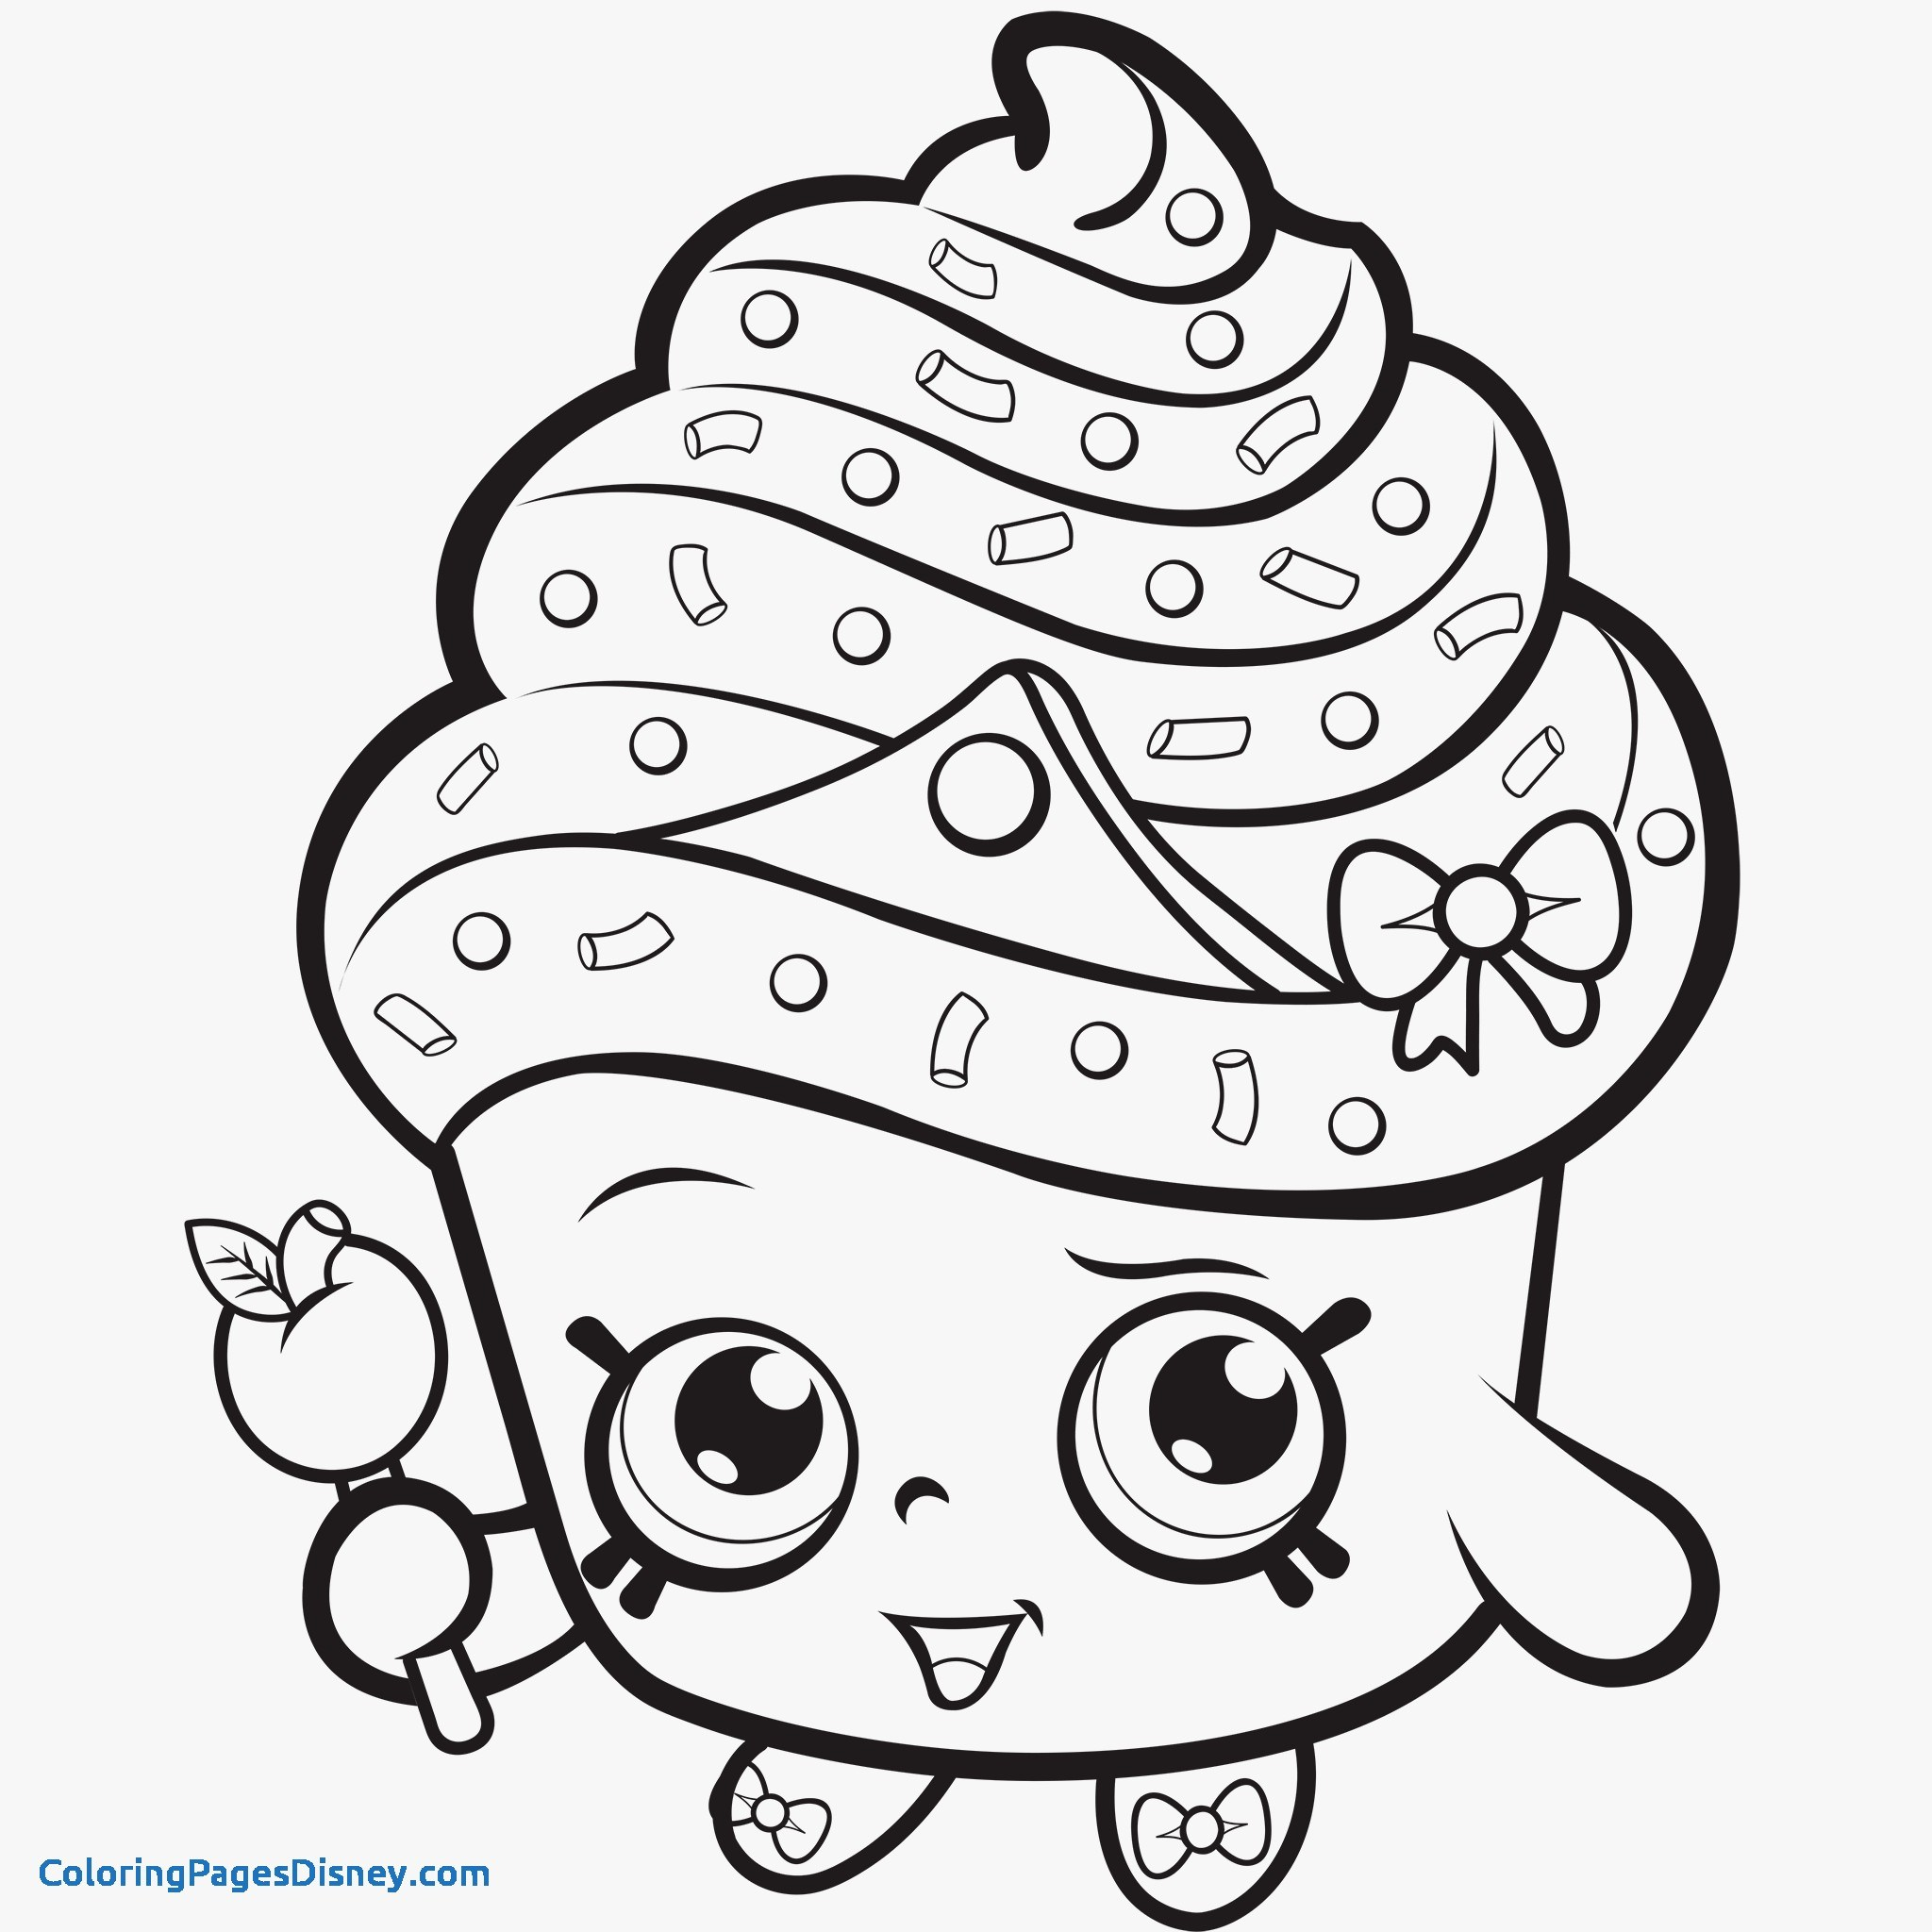 2048x2048 Shopkins Coloring Pages Best Of Unique And Rare Shopkins